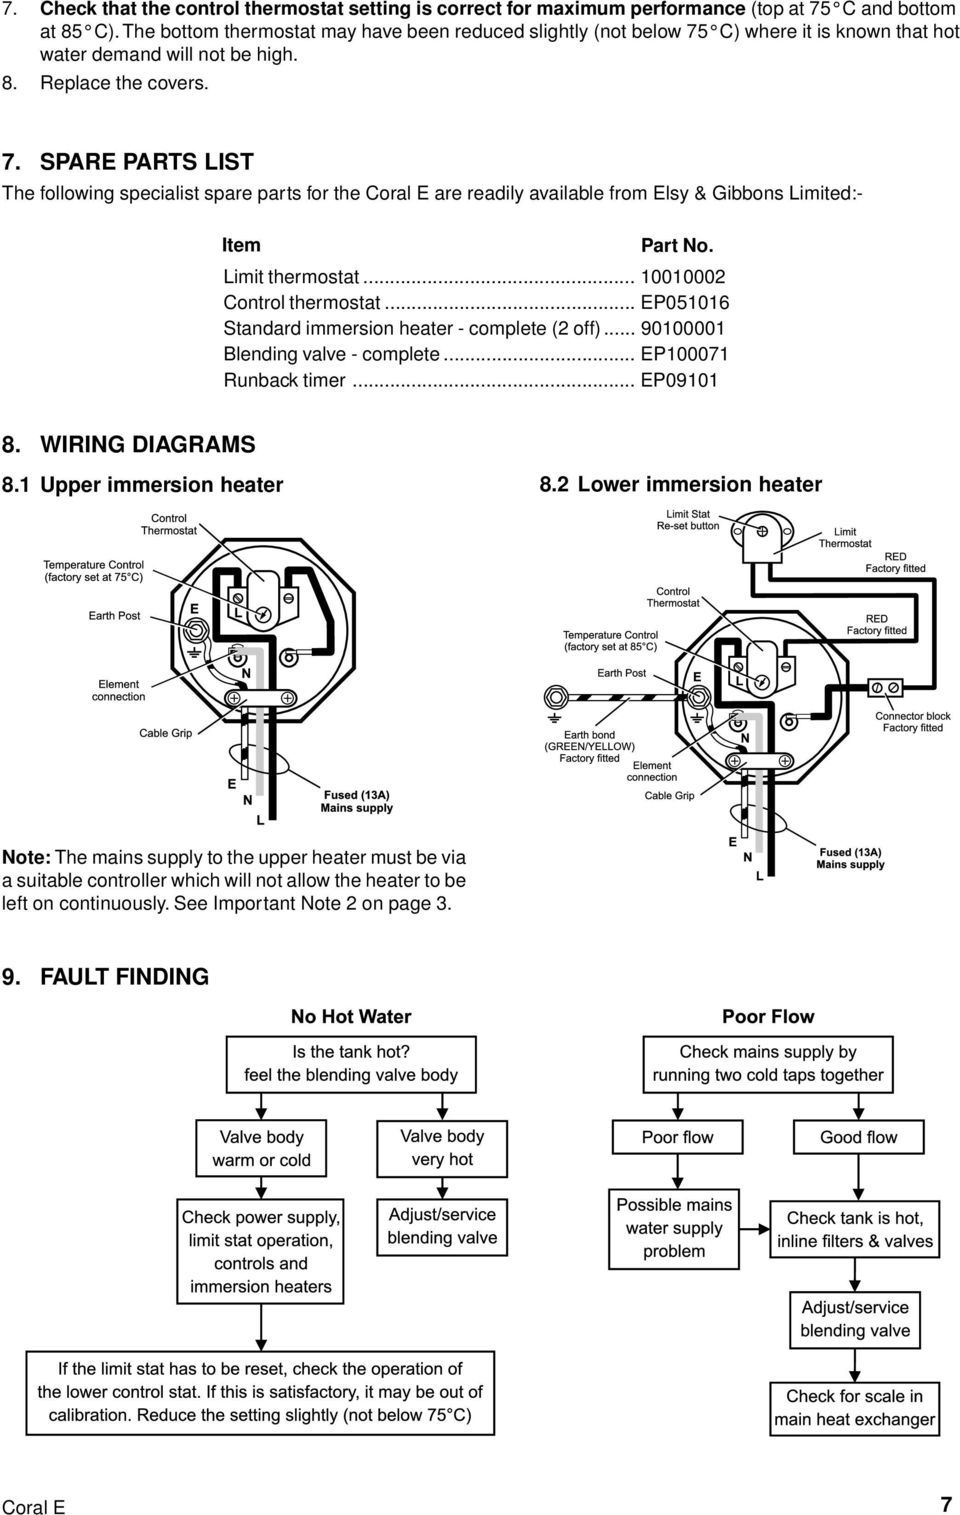 Elson Coral E Open Vented Thermal Store Providing Mains Pressure Wiring Diagram Immersion Heater Limit Thermostat 10010002 Control Ep051016 Standard Complete